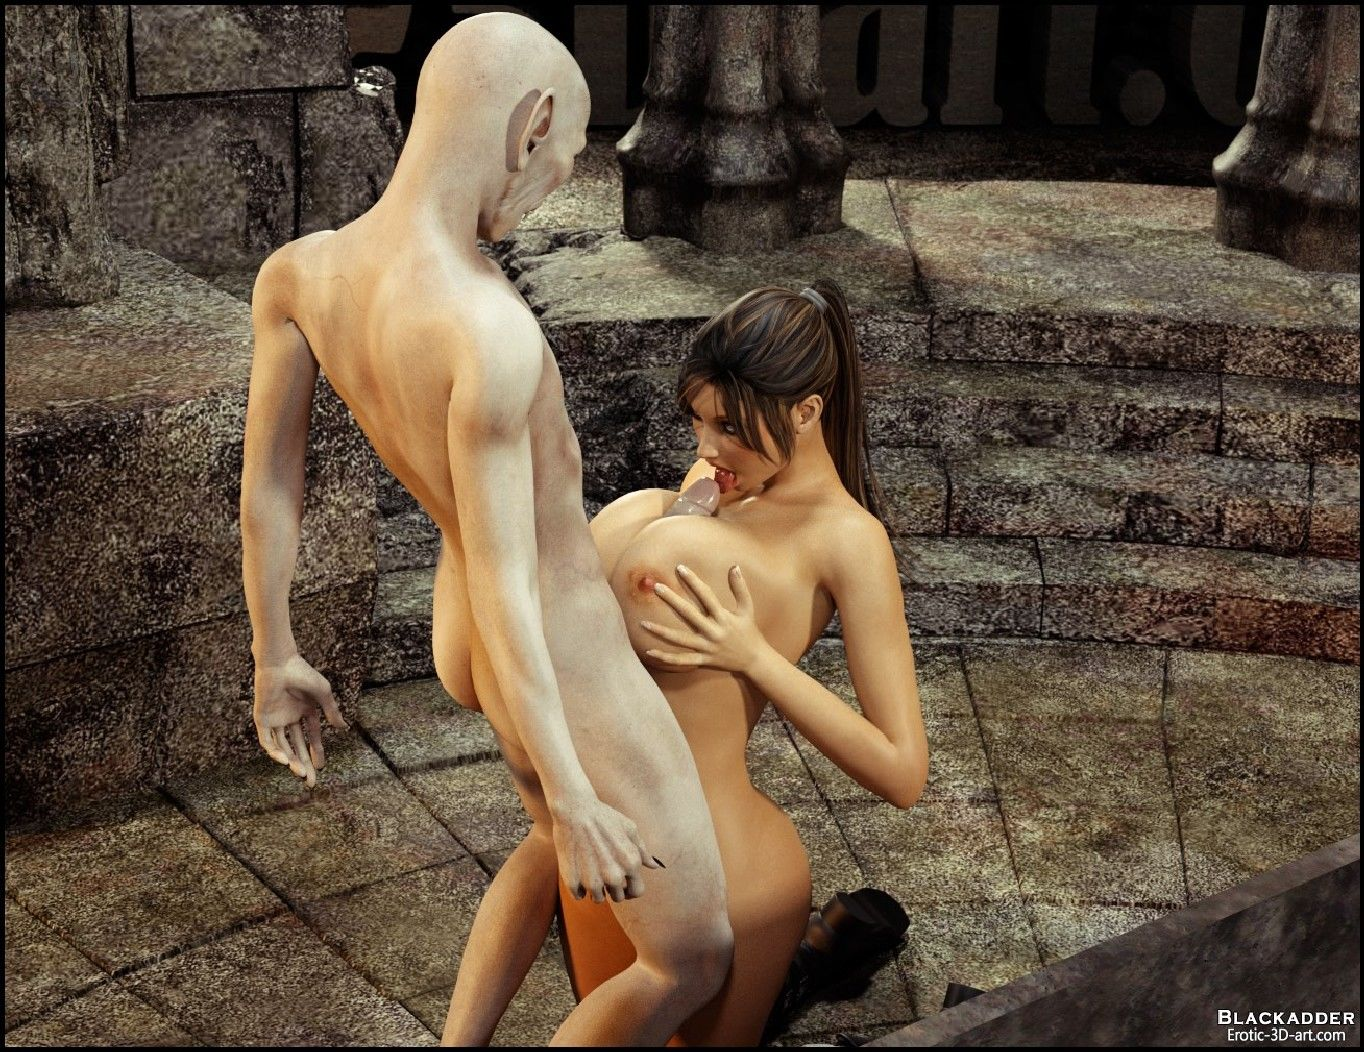 Tomb raider and midget porn naked videos